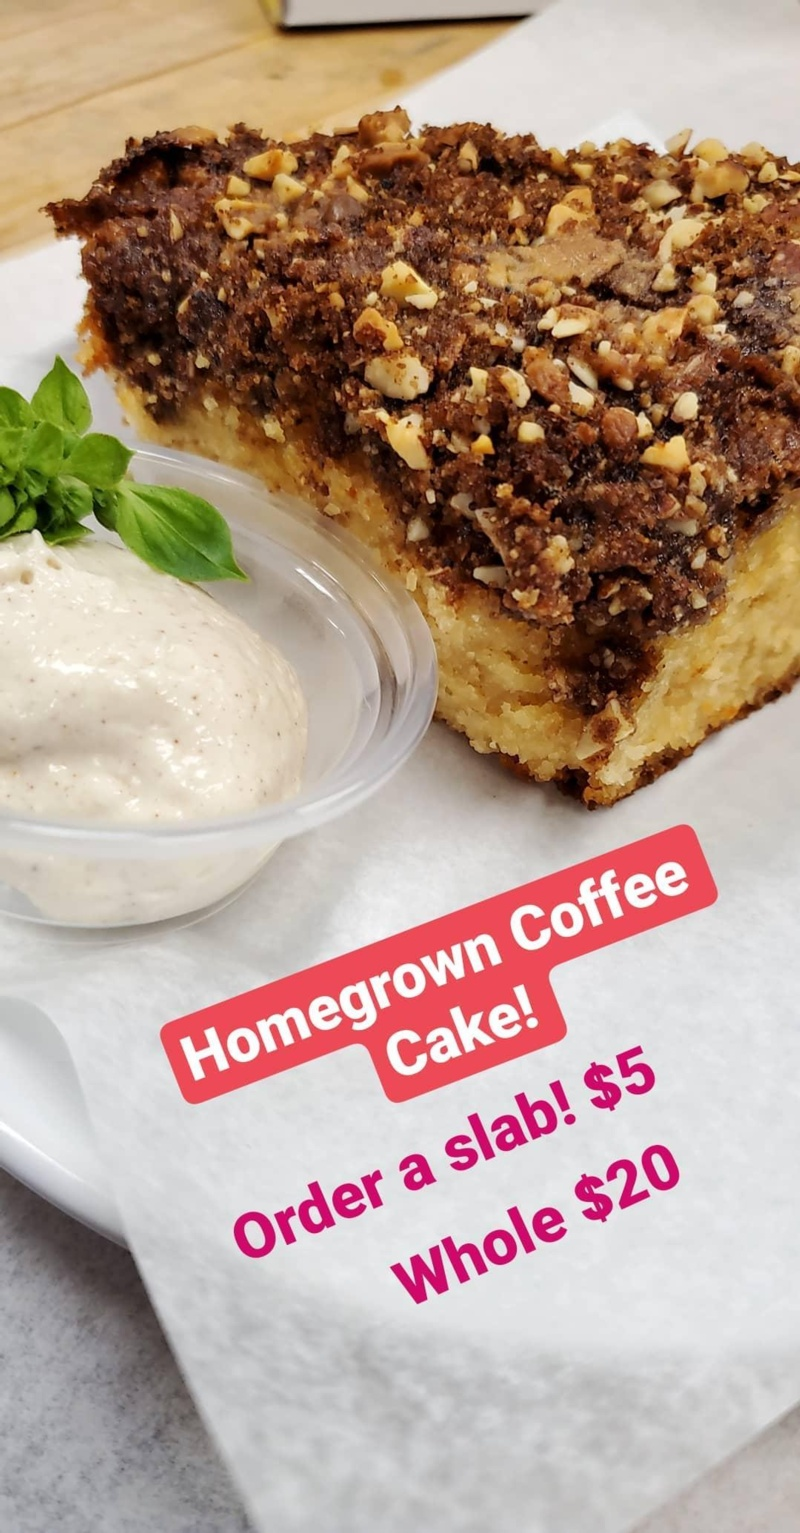 Homegrown Coffee Cake